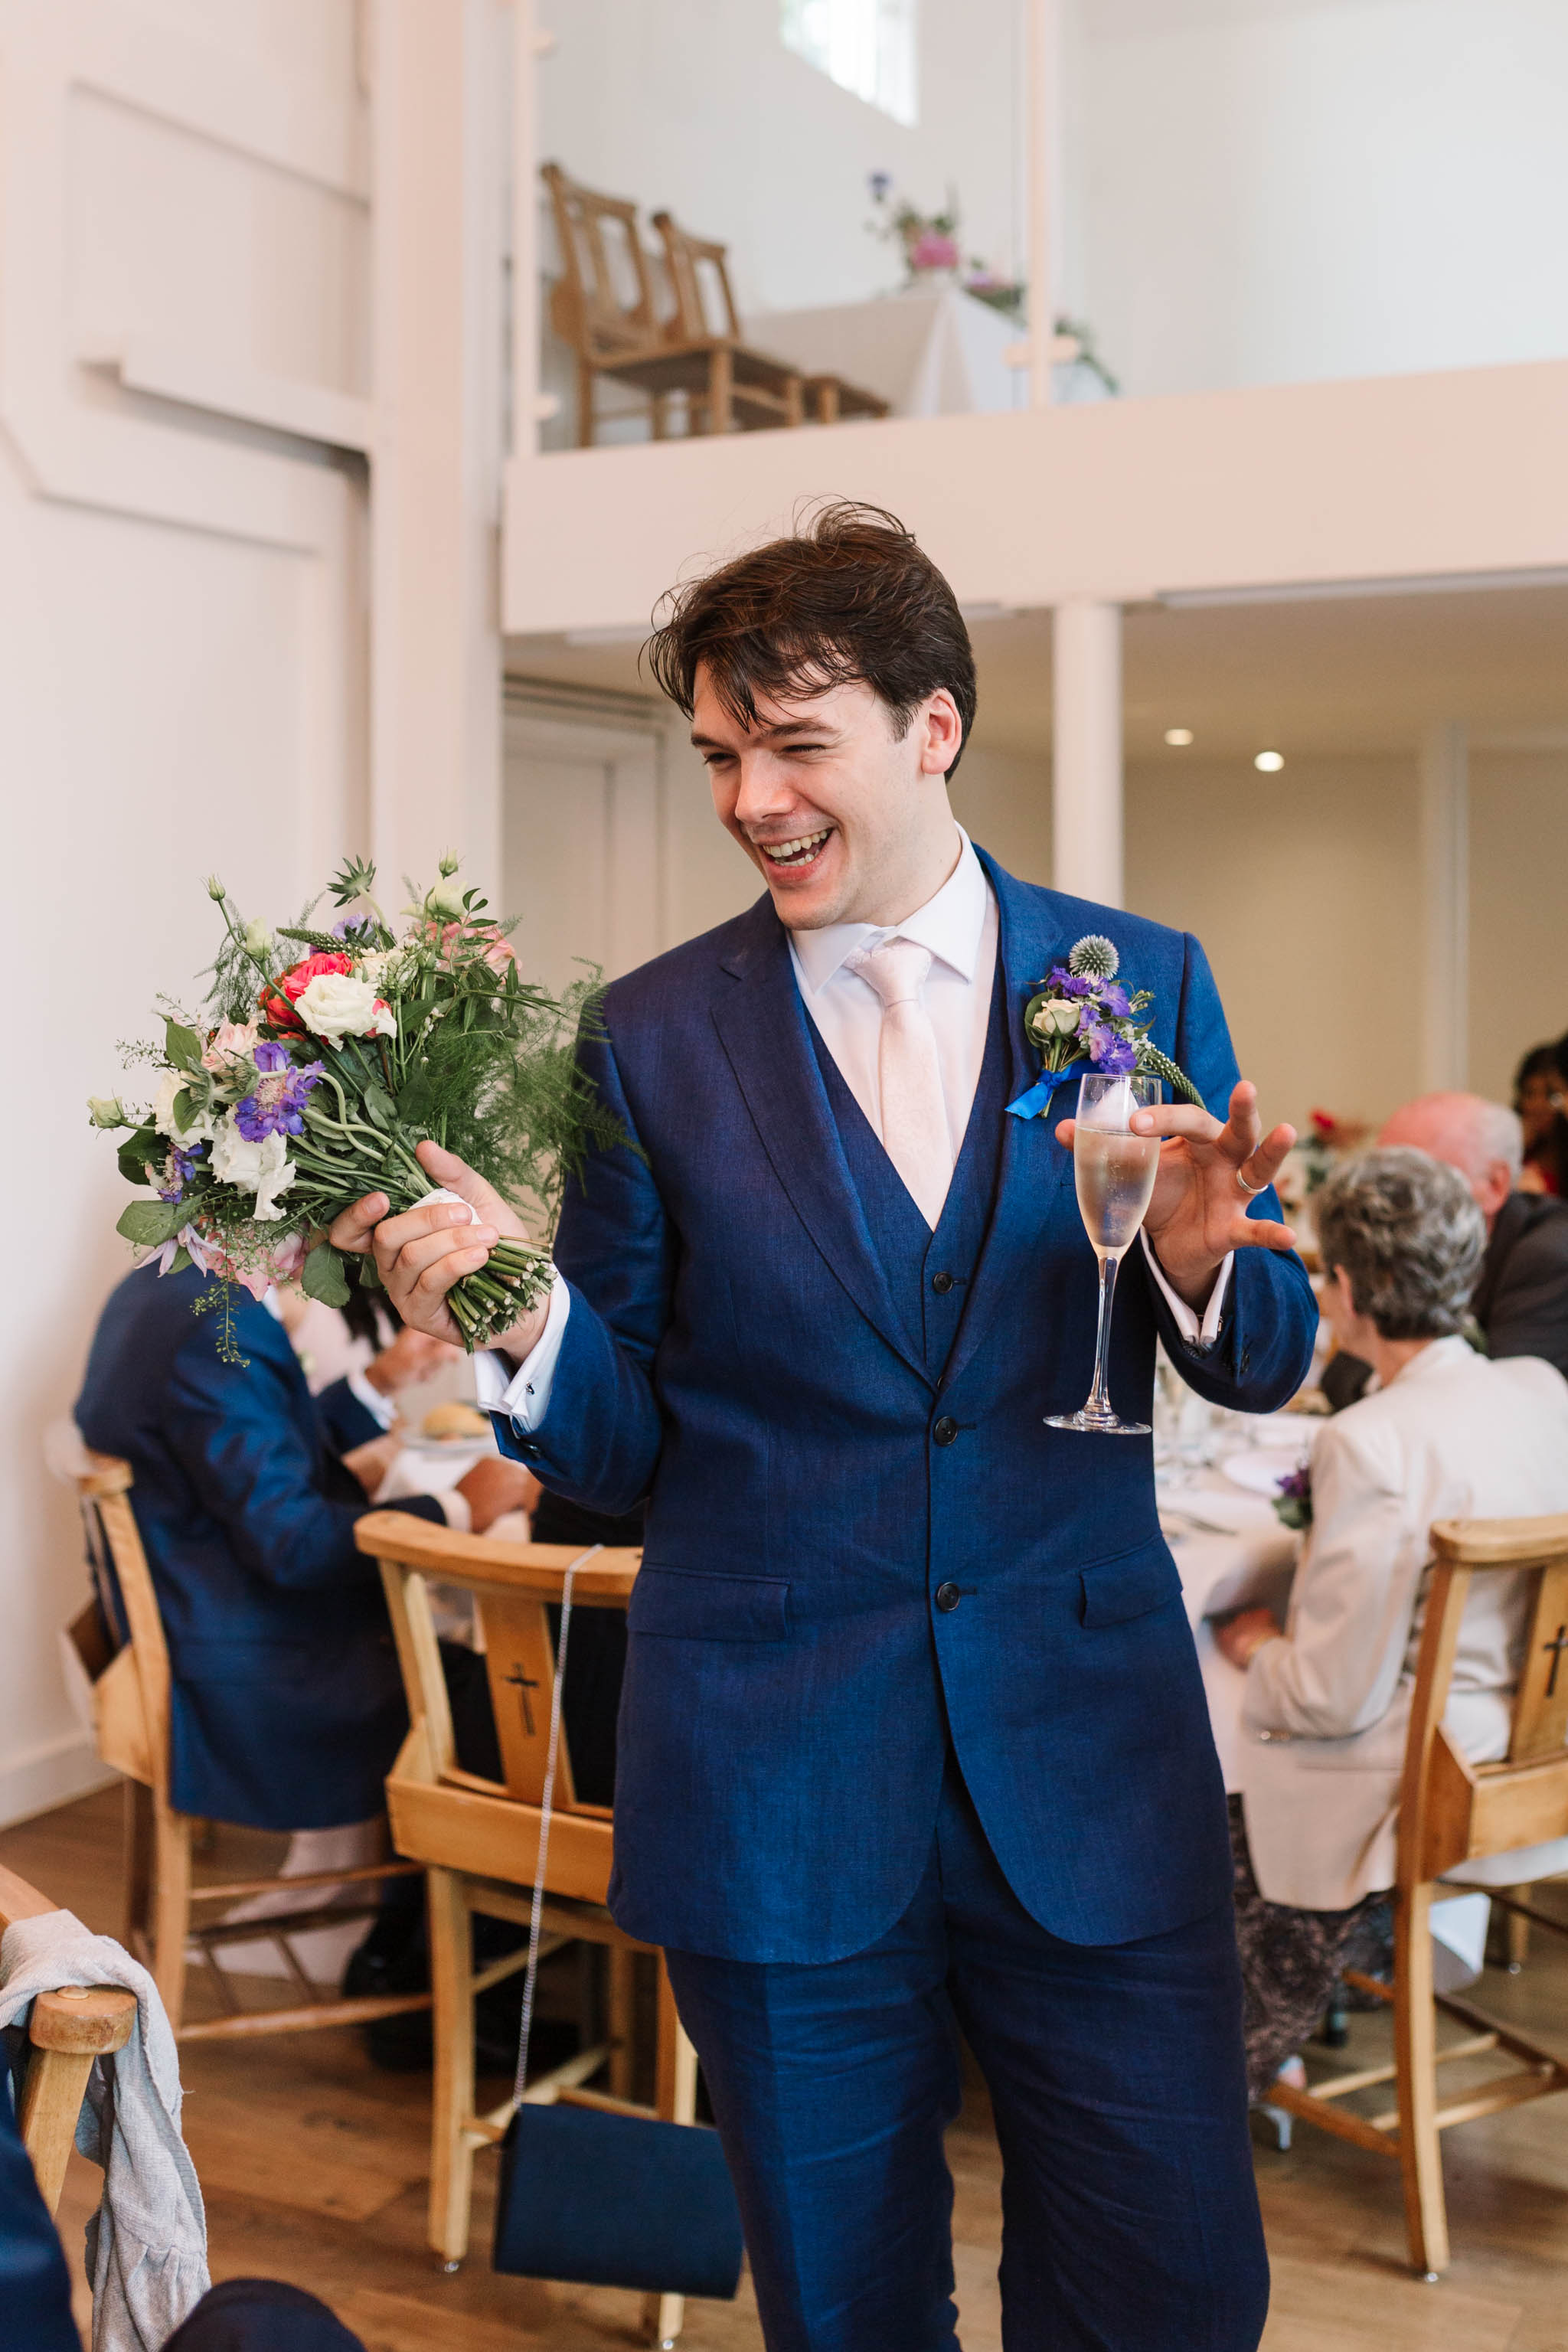 groom holding wedding bouquet and champagne